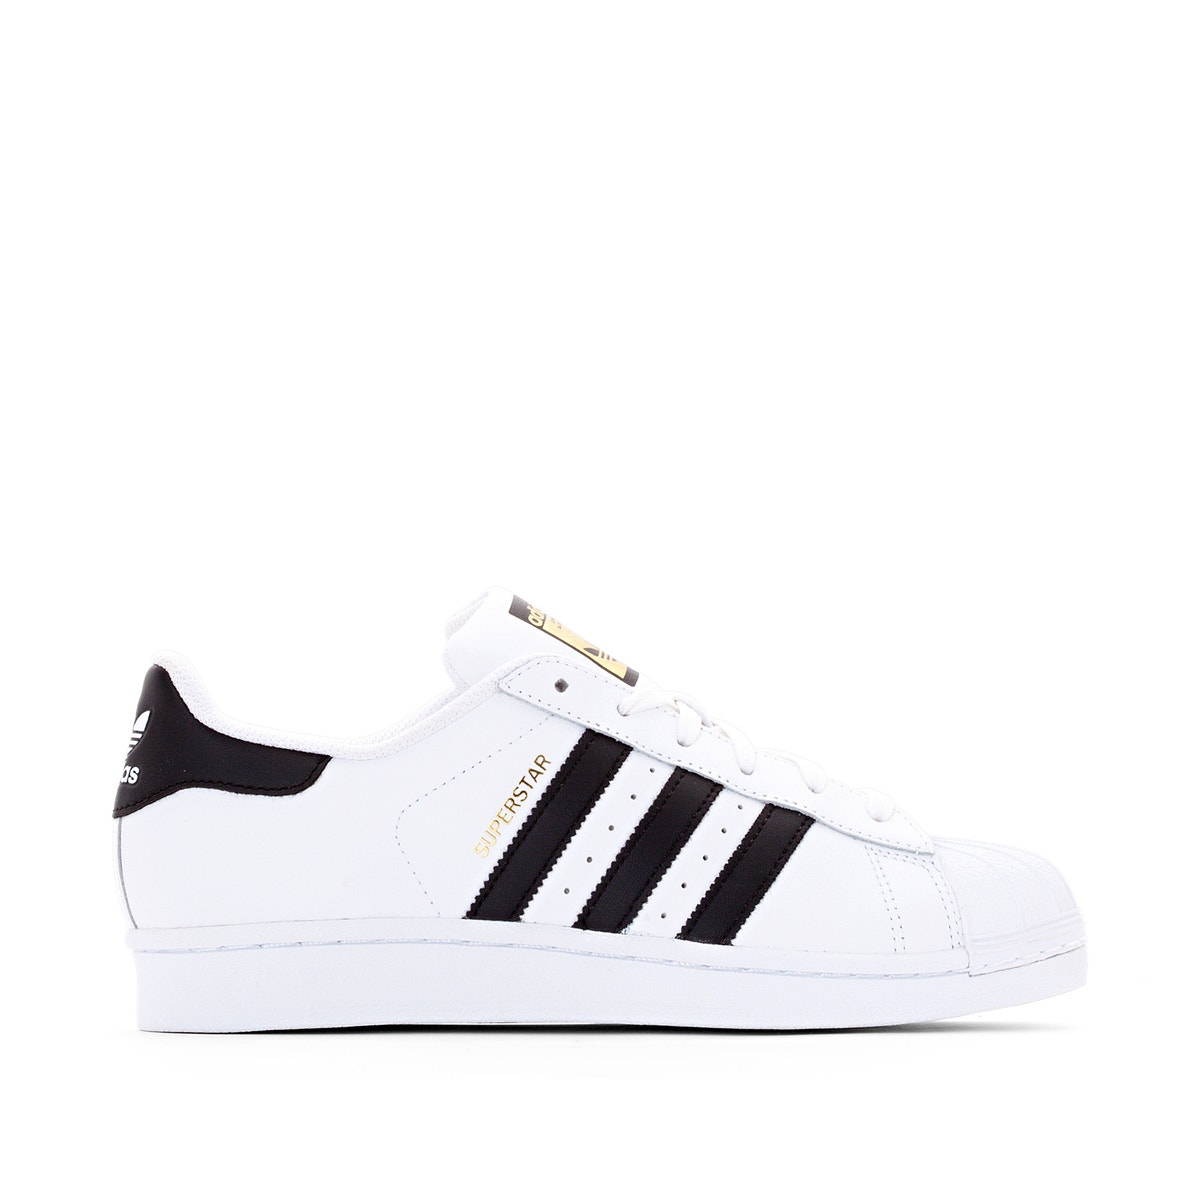 adidas Originals - Adidas Originals Superstar 350110981 - 1123